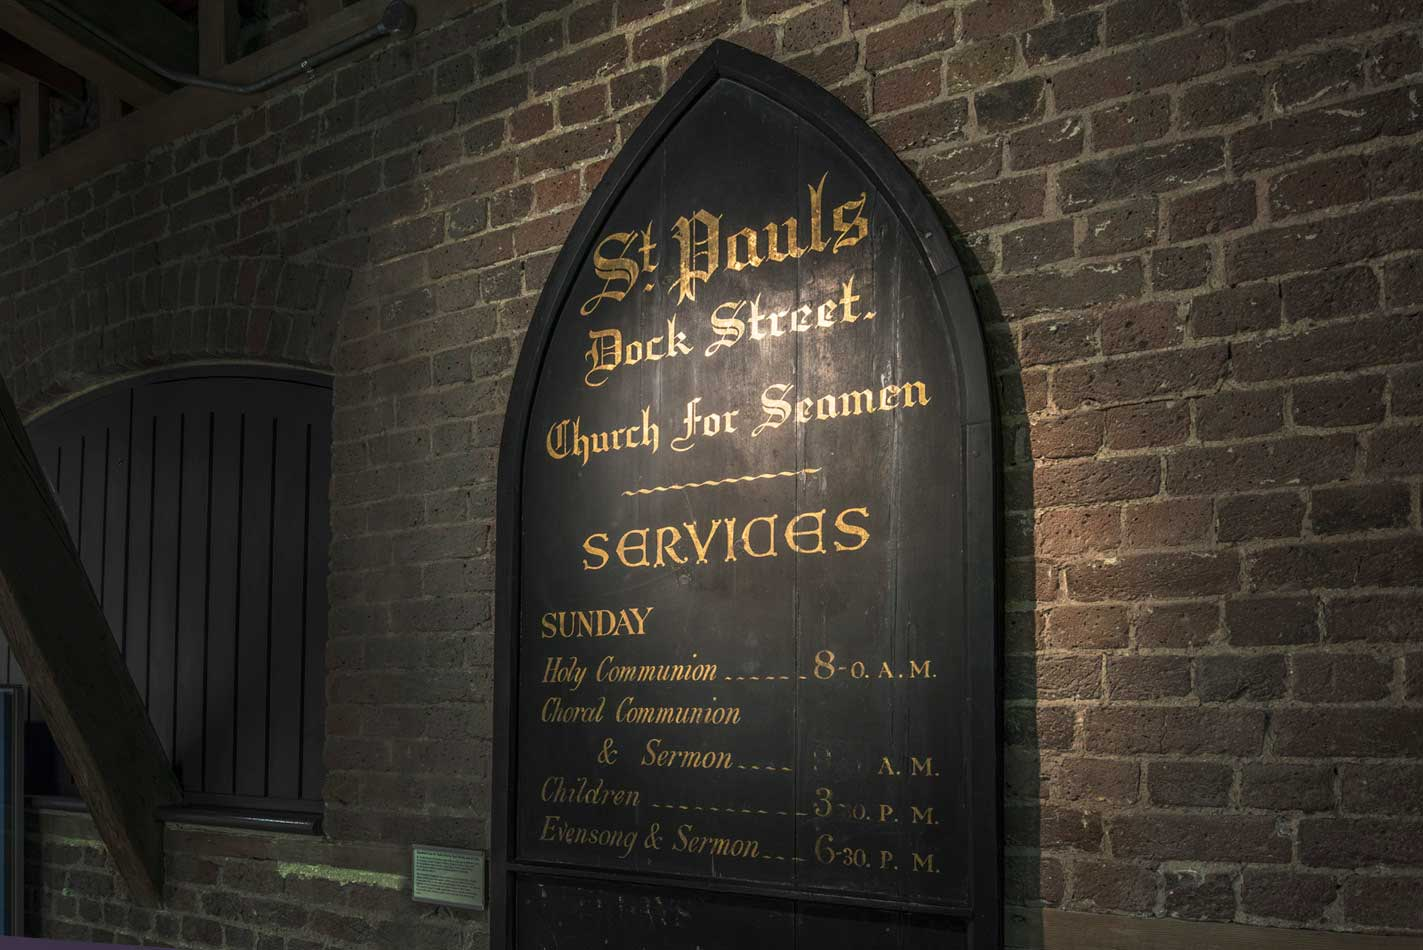 The sign of the St. Paul's Seamans' Church.